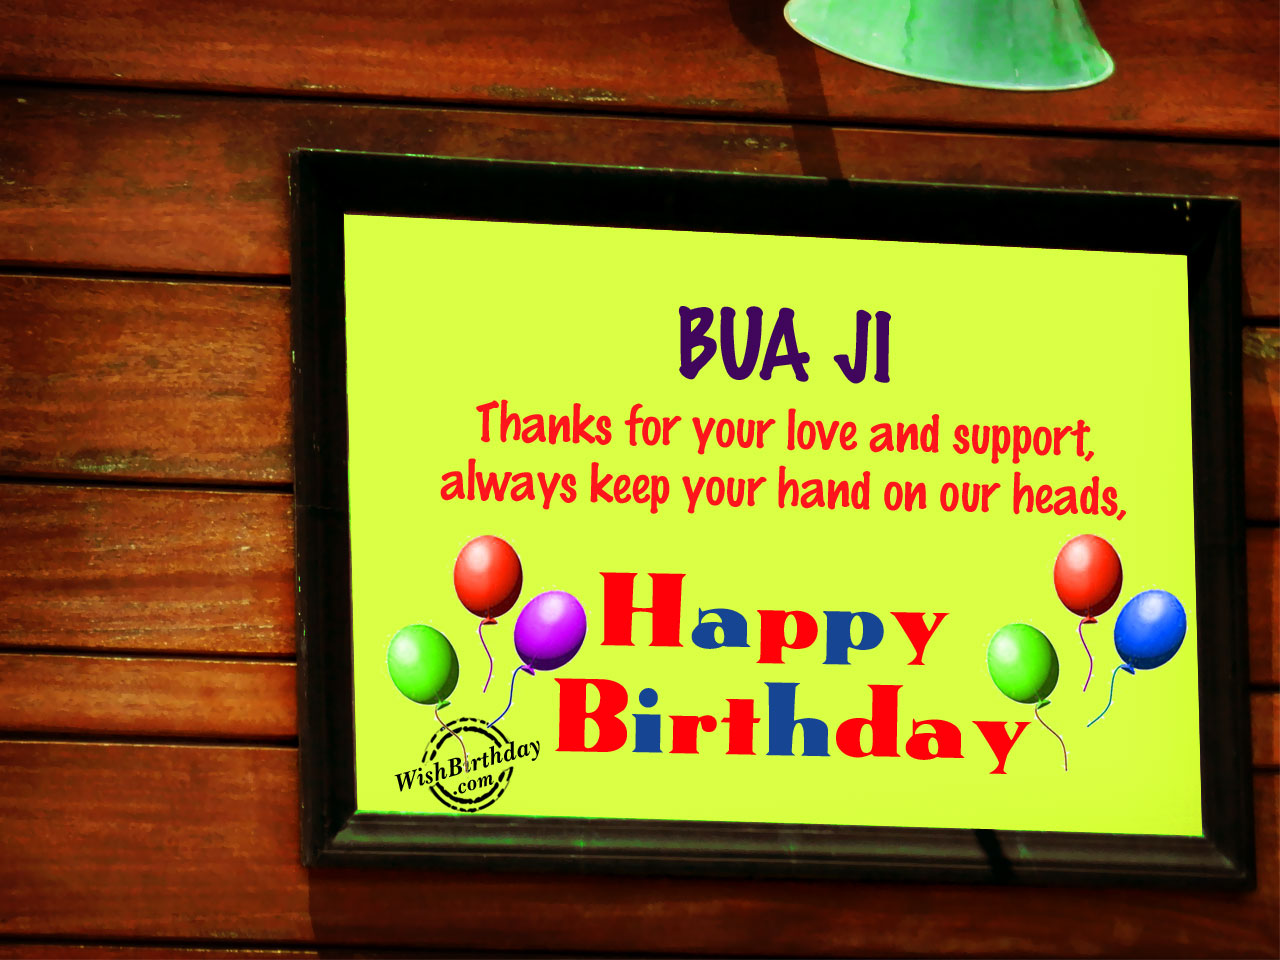 Birthday wishes for bua ji birthday images pictures thanks for your love and support bua jihappy birthday bookmarktalkfo Image collections